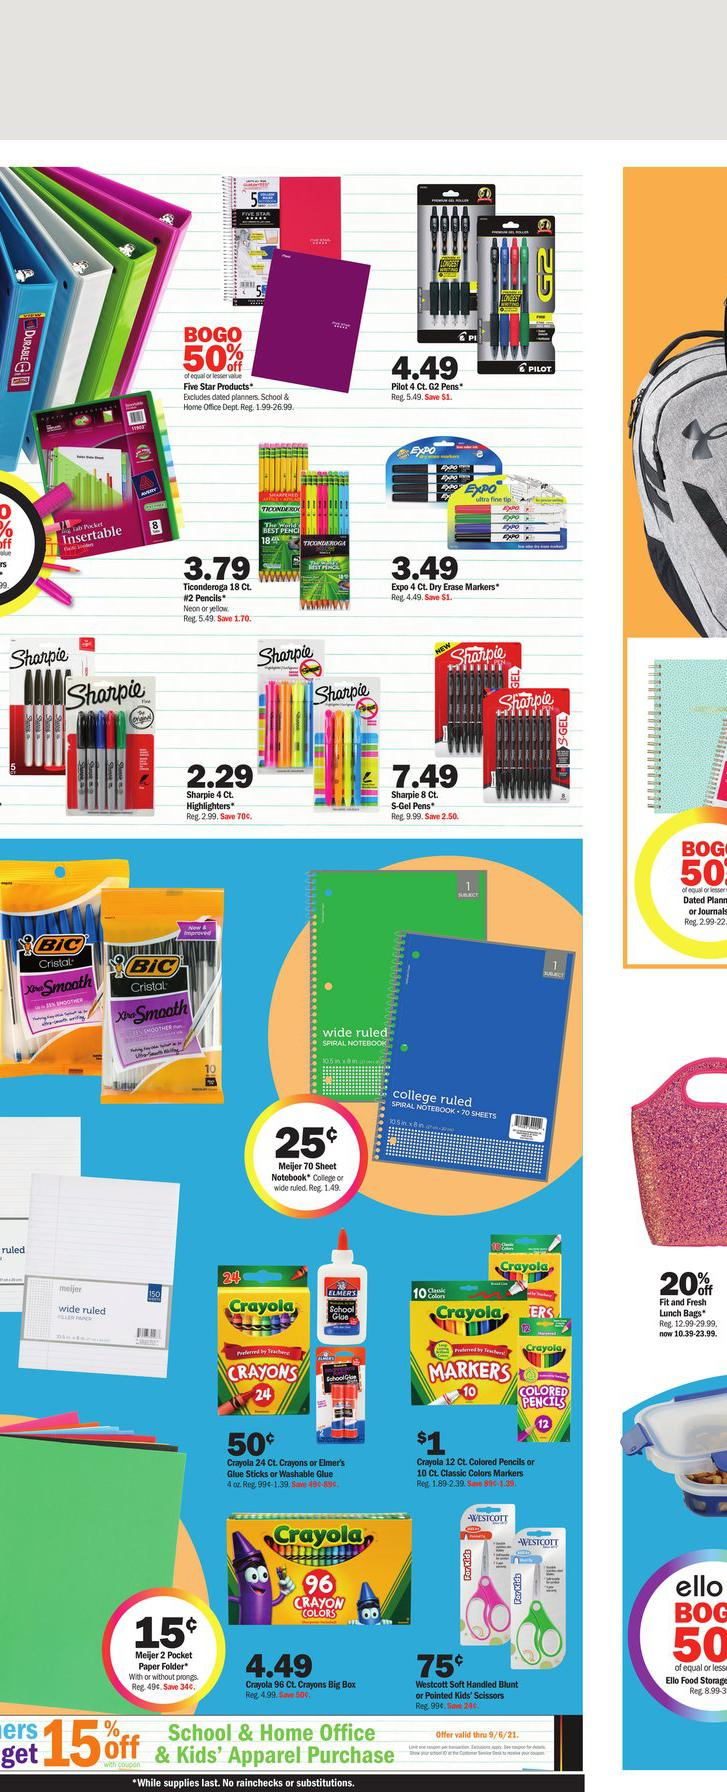 01.08.2021 Meijer ad 24. page